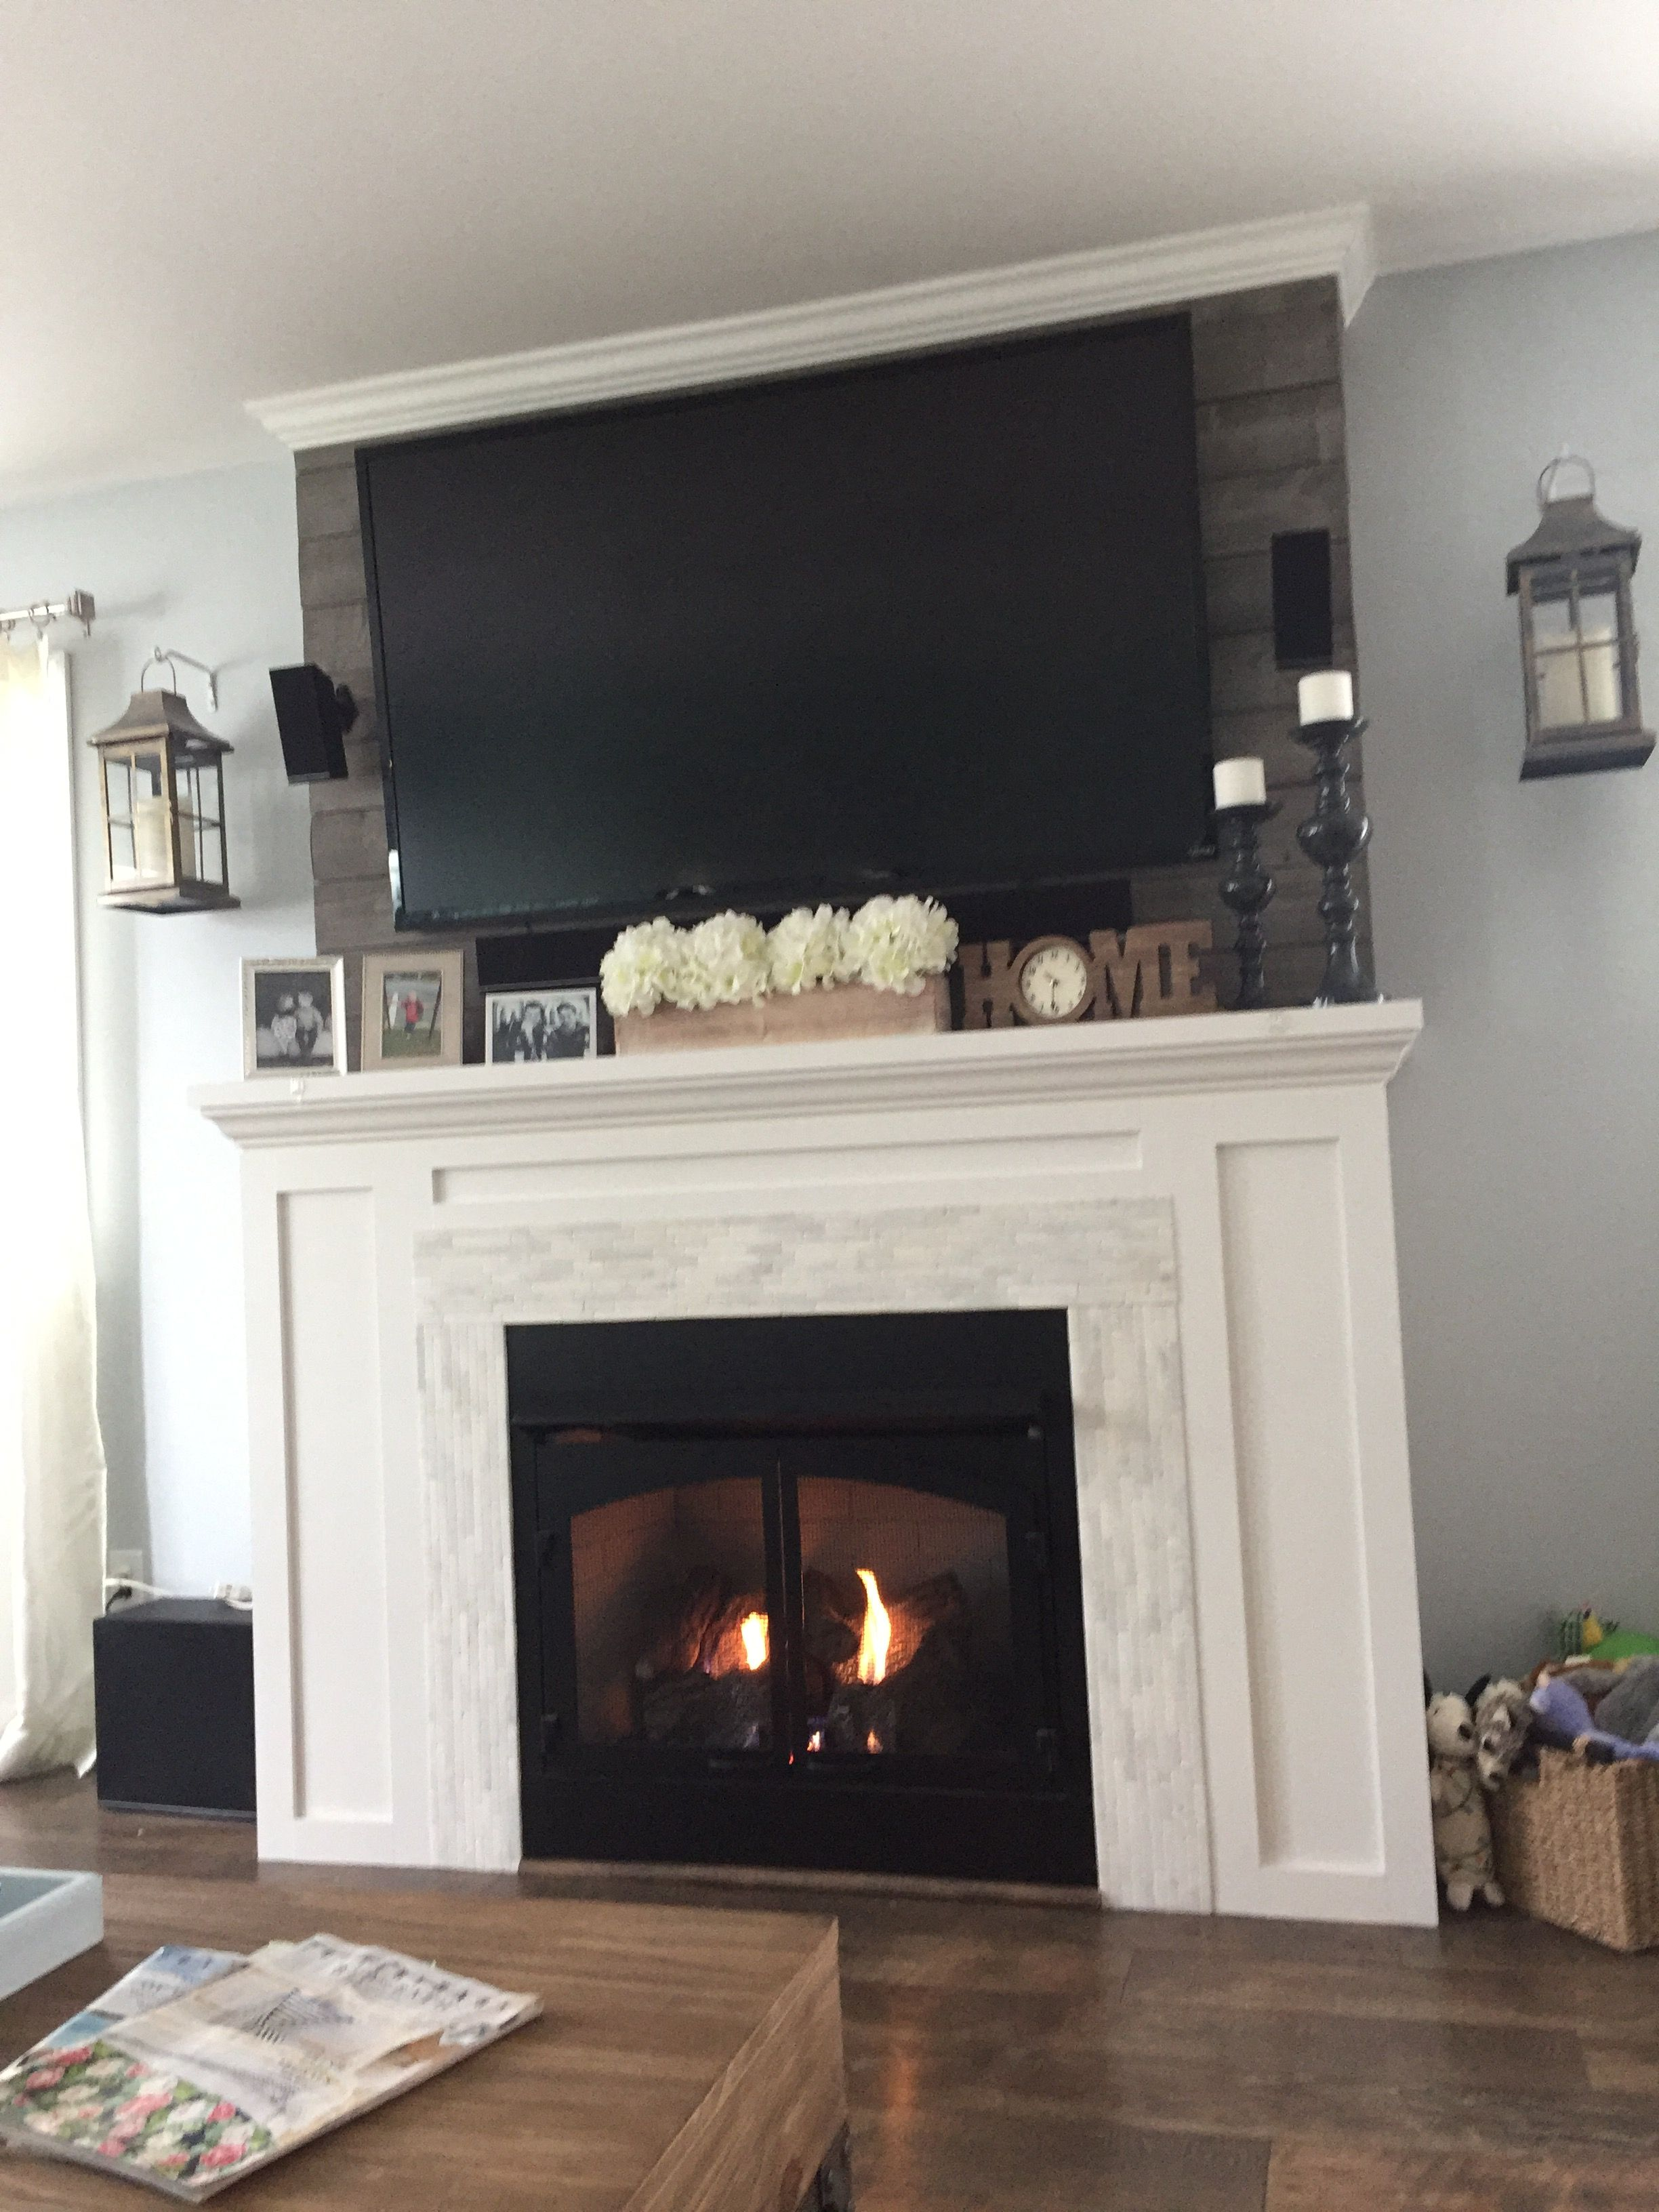 DIY gas fireplace mantle | New homes, Fireplace wall, Home